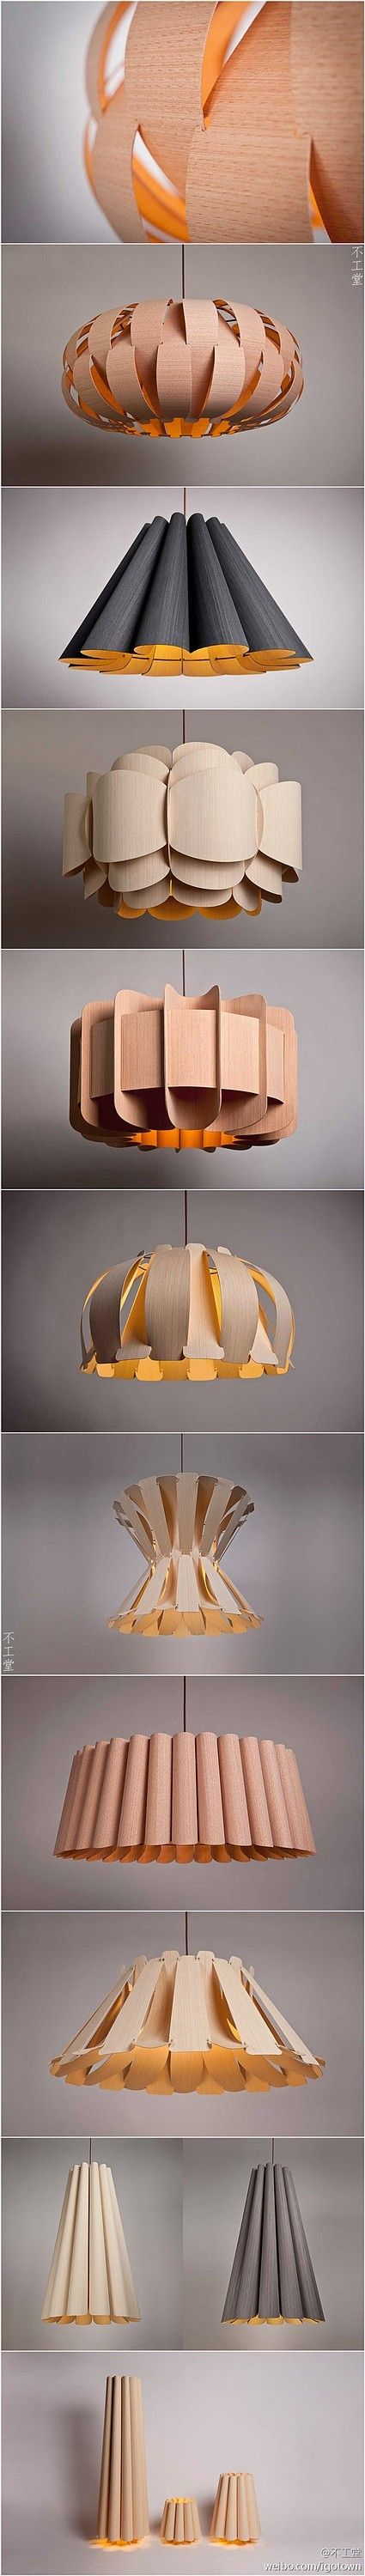 25 beautiful diy wood lamps and chandeliers that will light up 25 beautiful diy wood lamps and chandeliers that will light up your home homesthetics arubaitofo Images